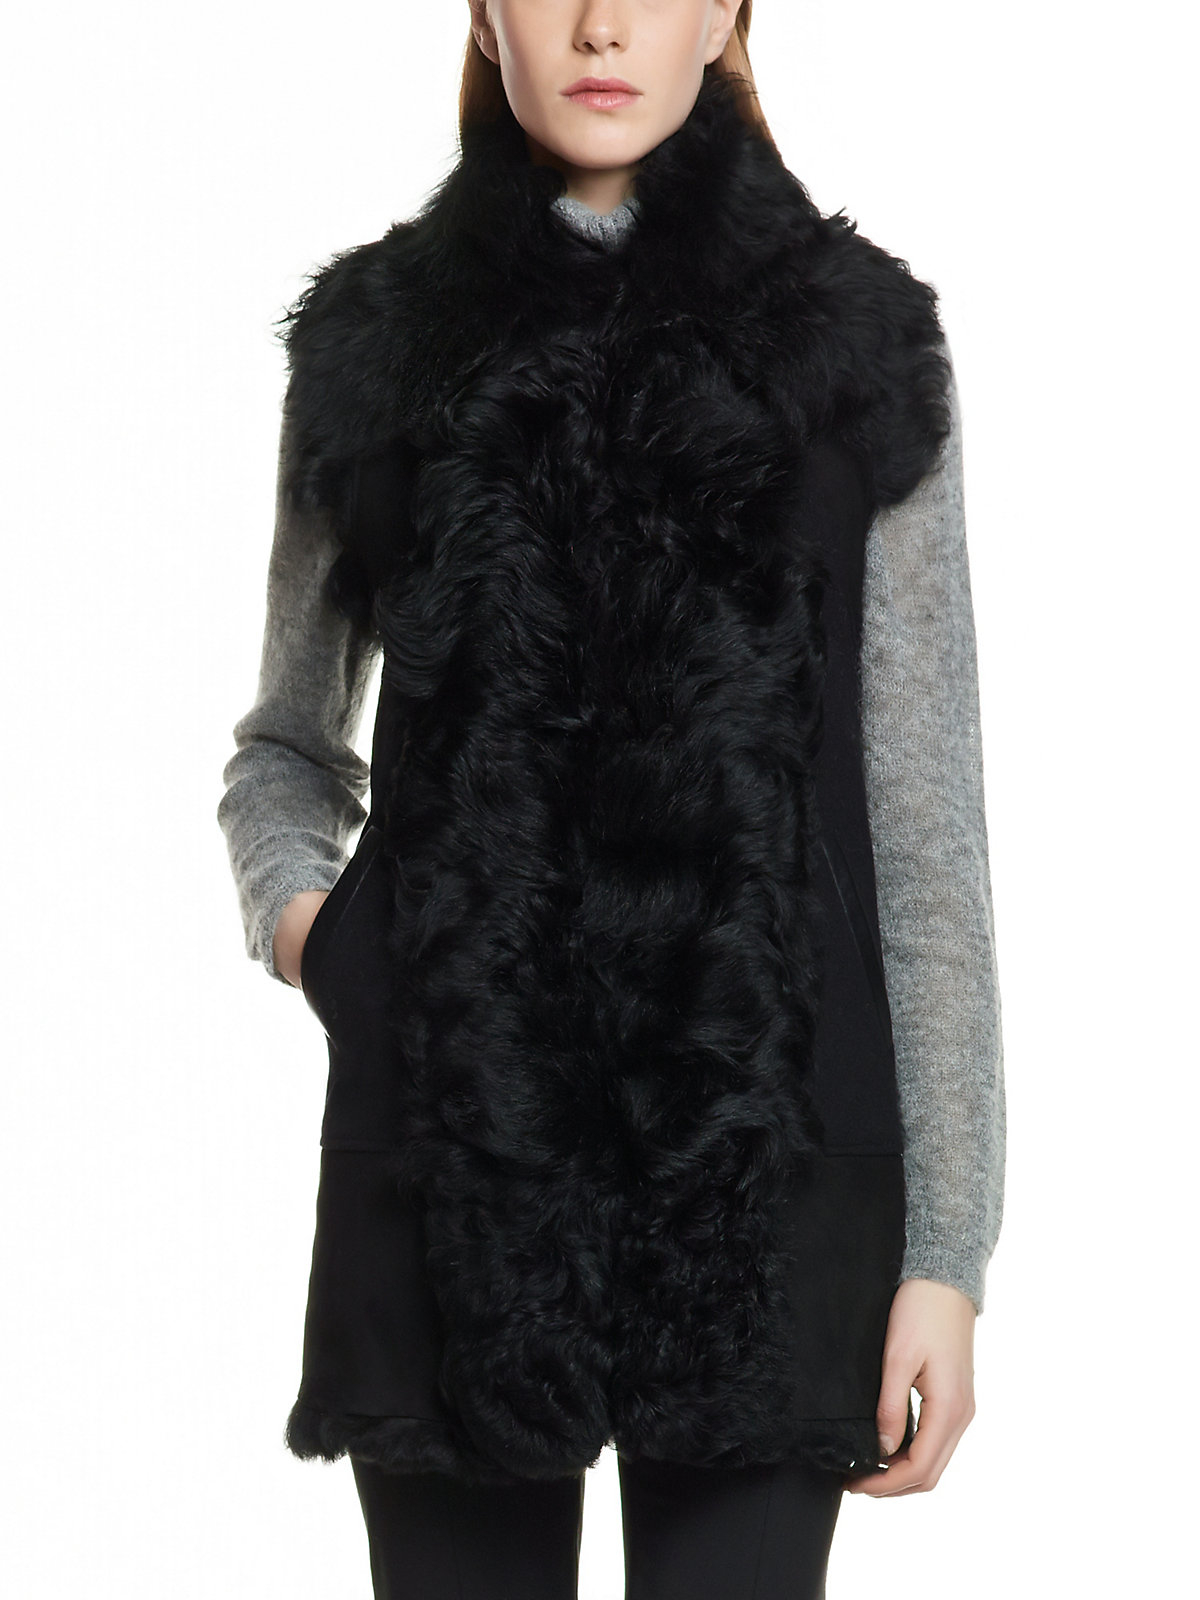 patrizia pepe sheepskin gilet combined with padded cashmere wool baize inserts in black nero. Black Bedroom Furniture Sets. Home Design Ideas